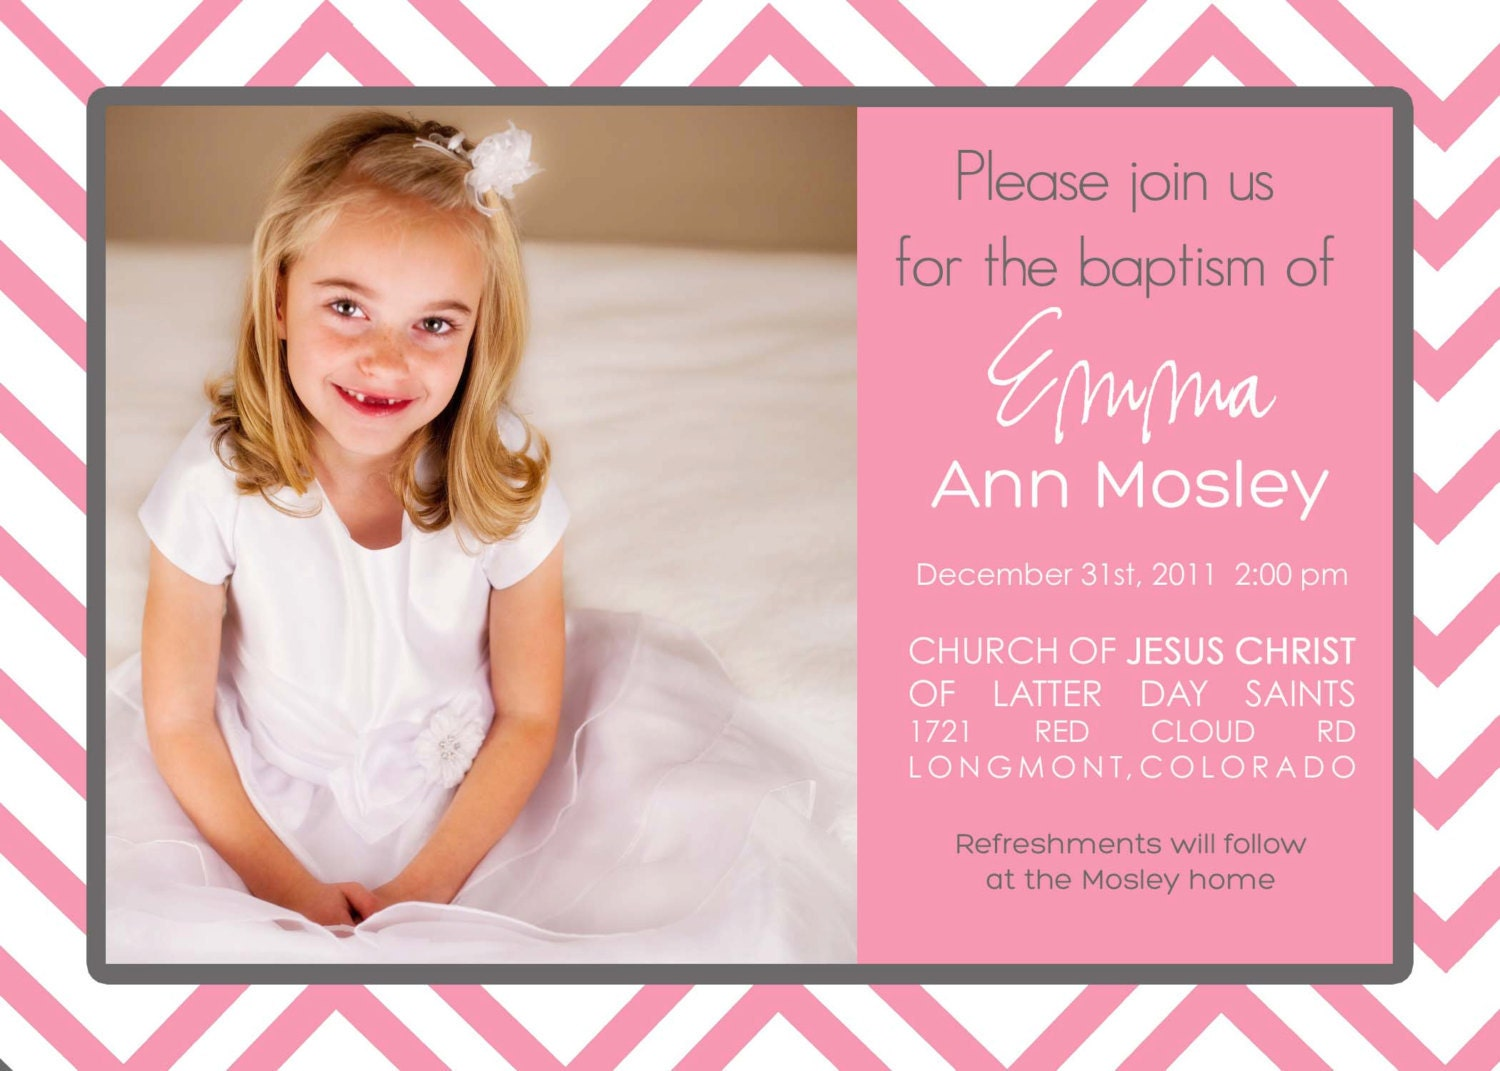 Printable Baptism Invitations for luxury invitations sample